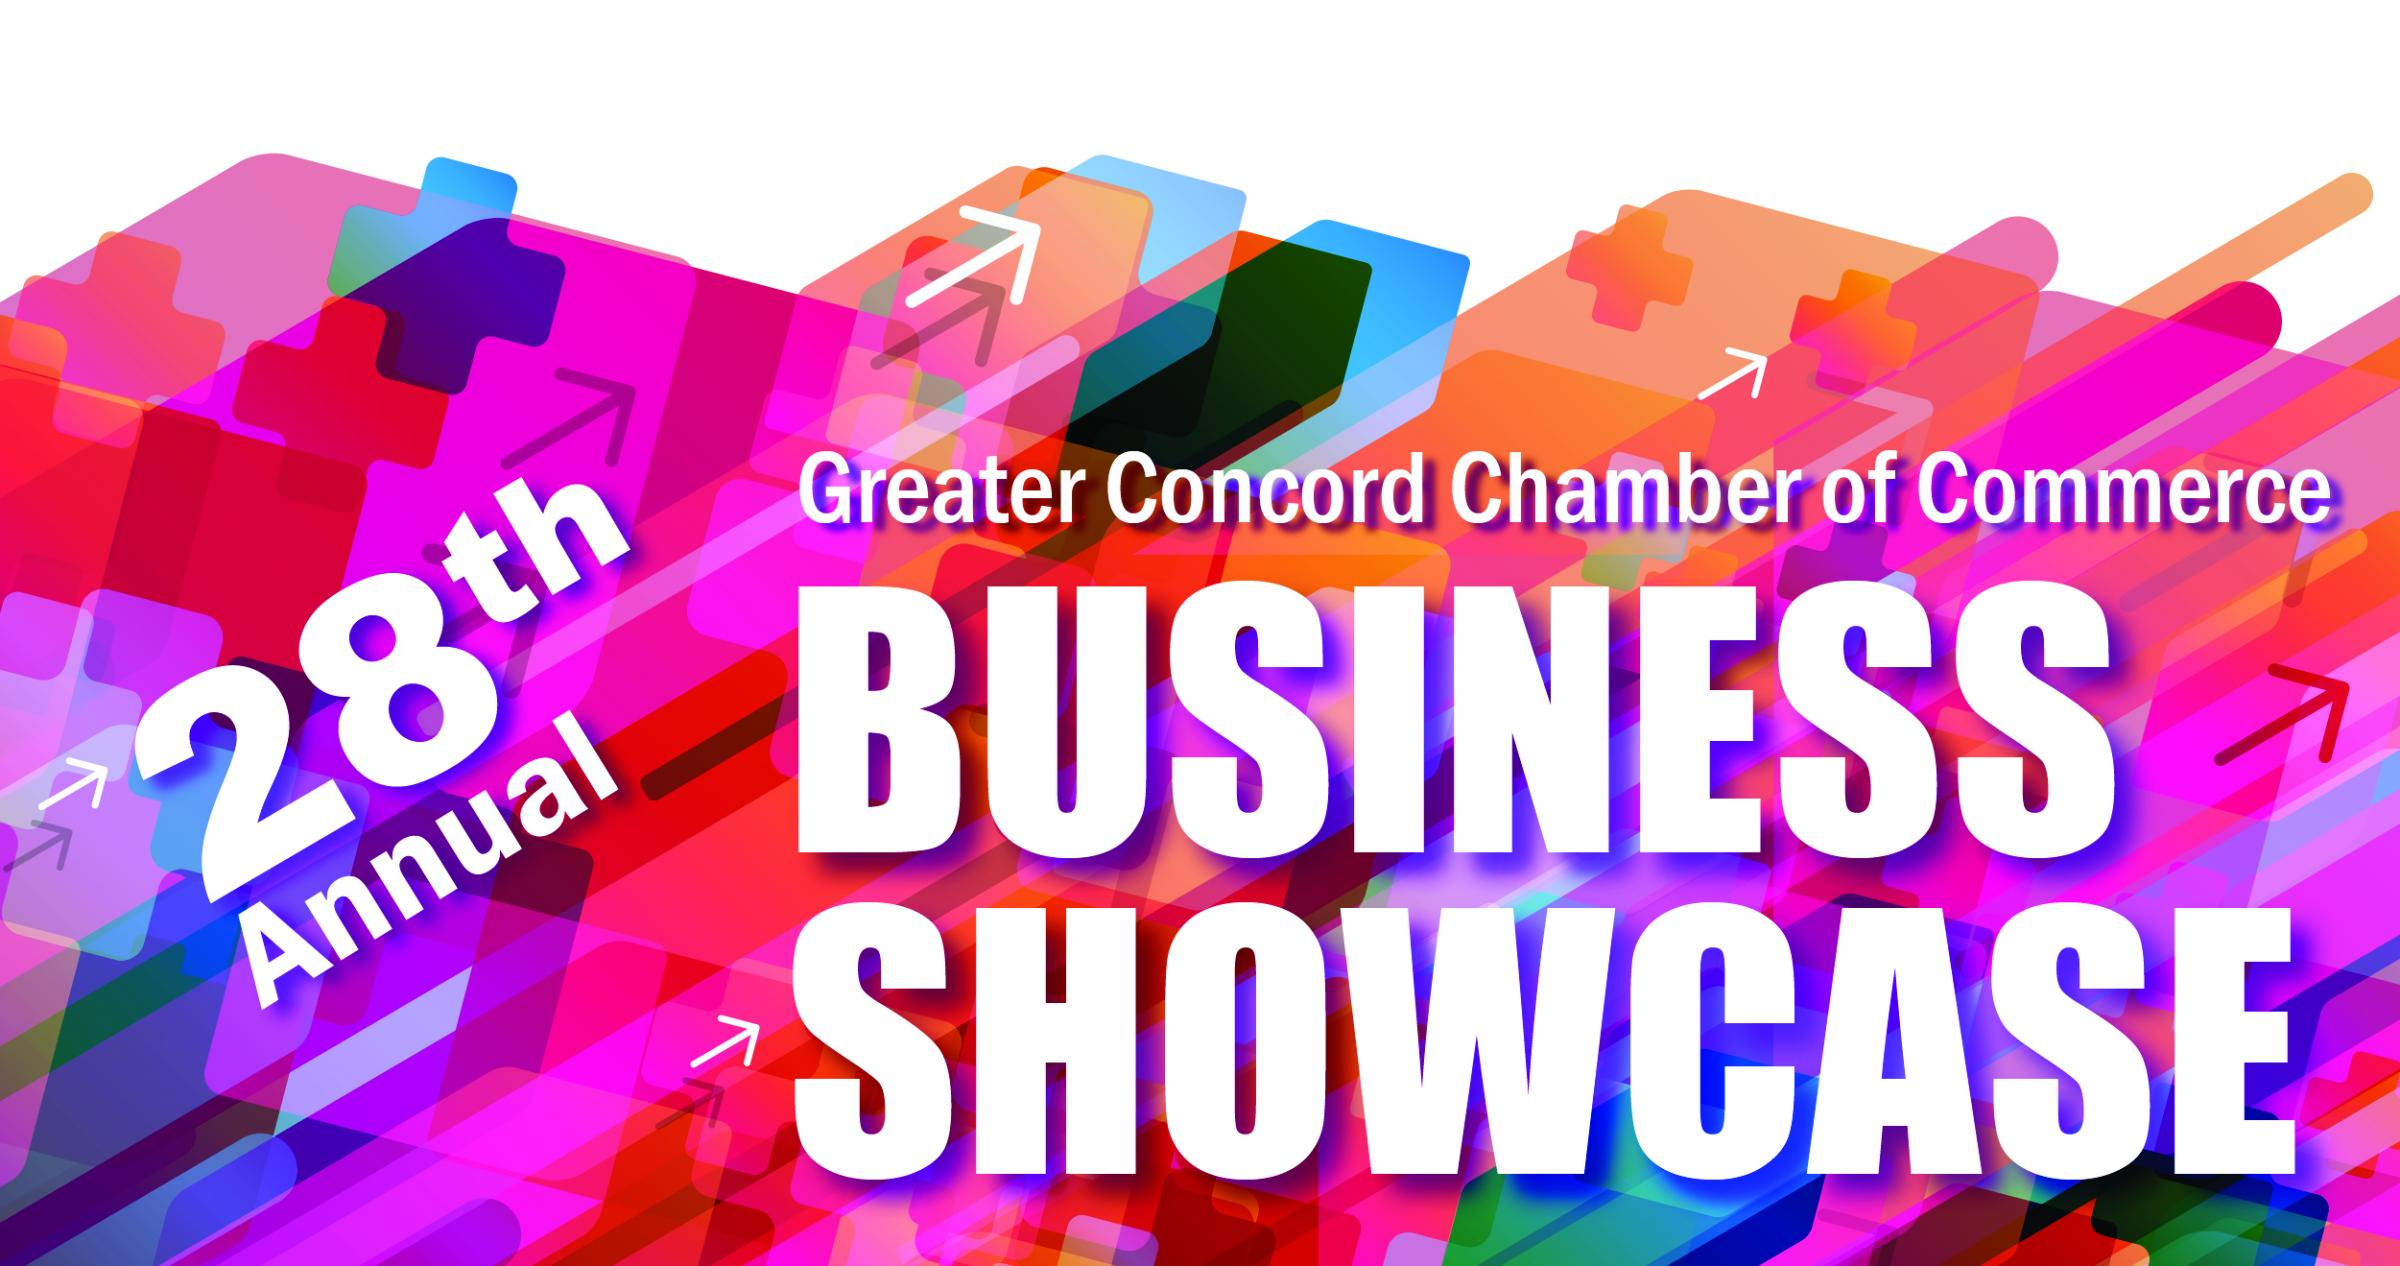 28th Annual Greater Concord Chamber of Commerce Business Showcase graphic